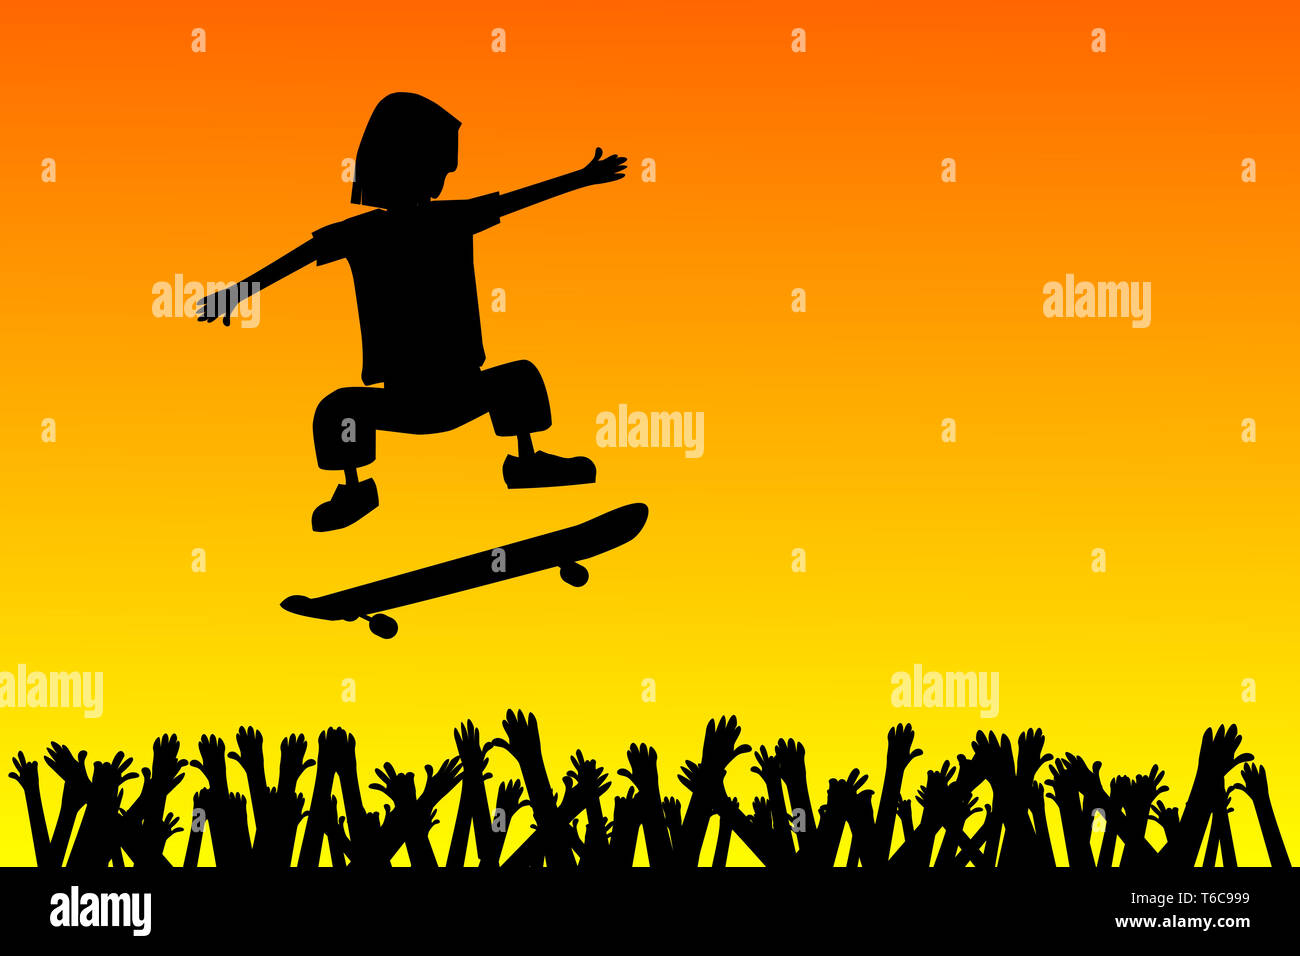 Skateboarder jumping over people - Stock Image